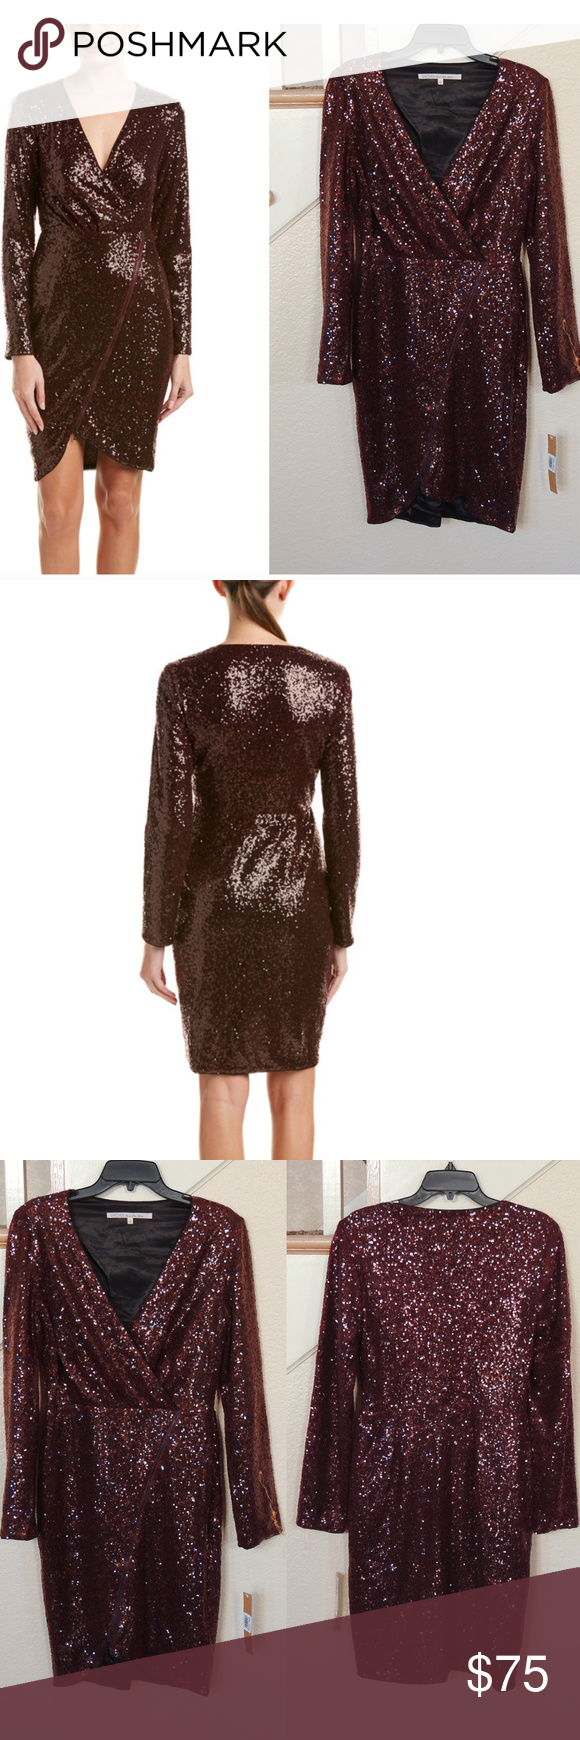 Dark red sequin long sleeve cocktail dress reasonable offers